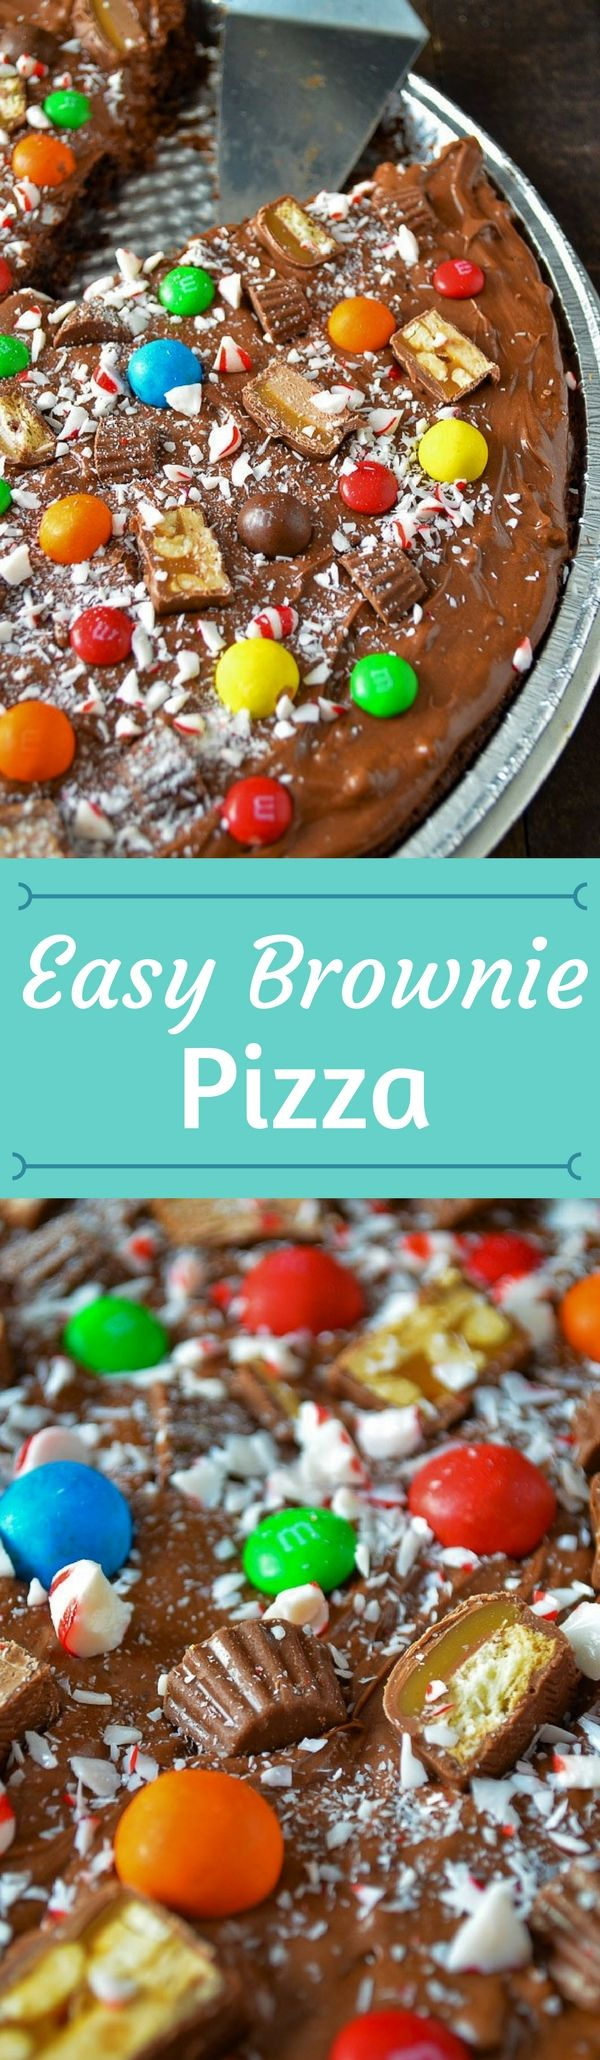 Put your leftover candy to good use and make this amazingly Easy Brownie Pizza! The family will eat it up! #chocolate #homemade #brownie #easy #recipe